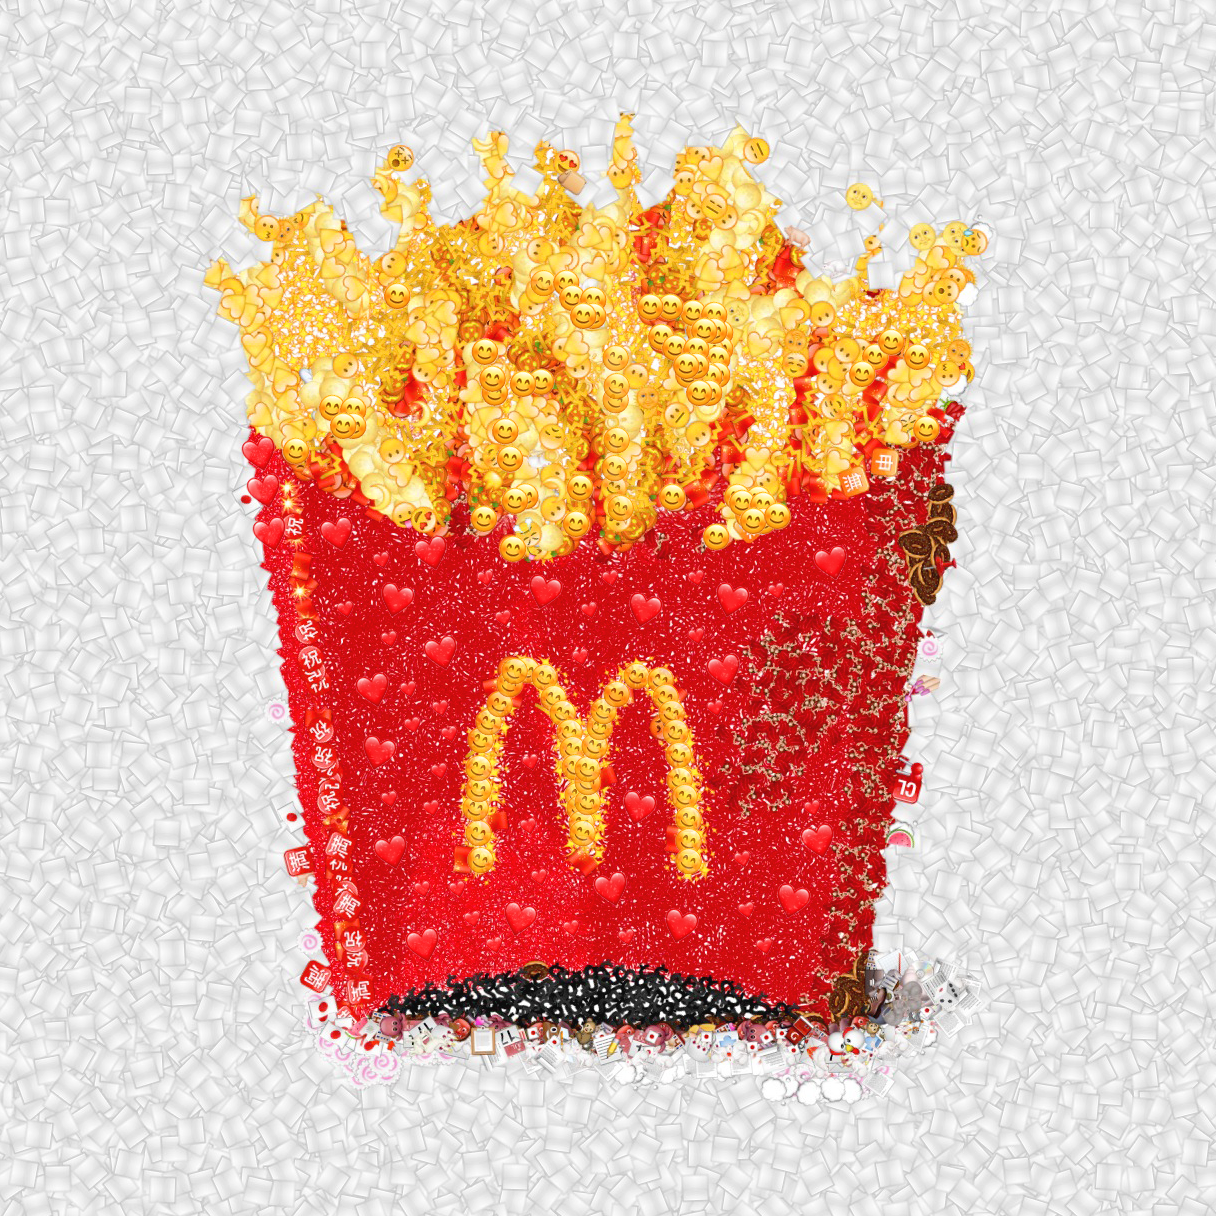 Big Mac, la hamburguesa insignia